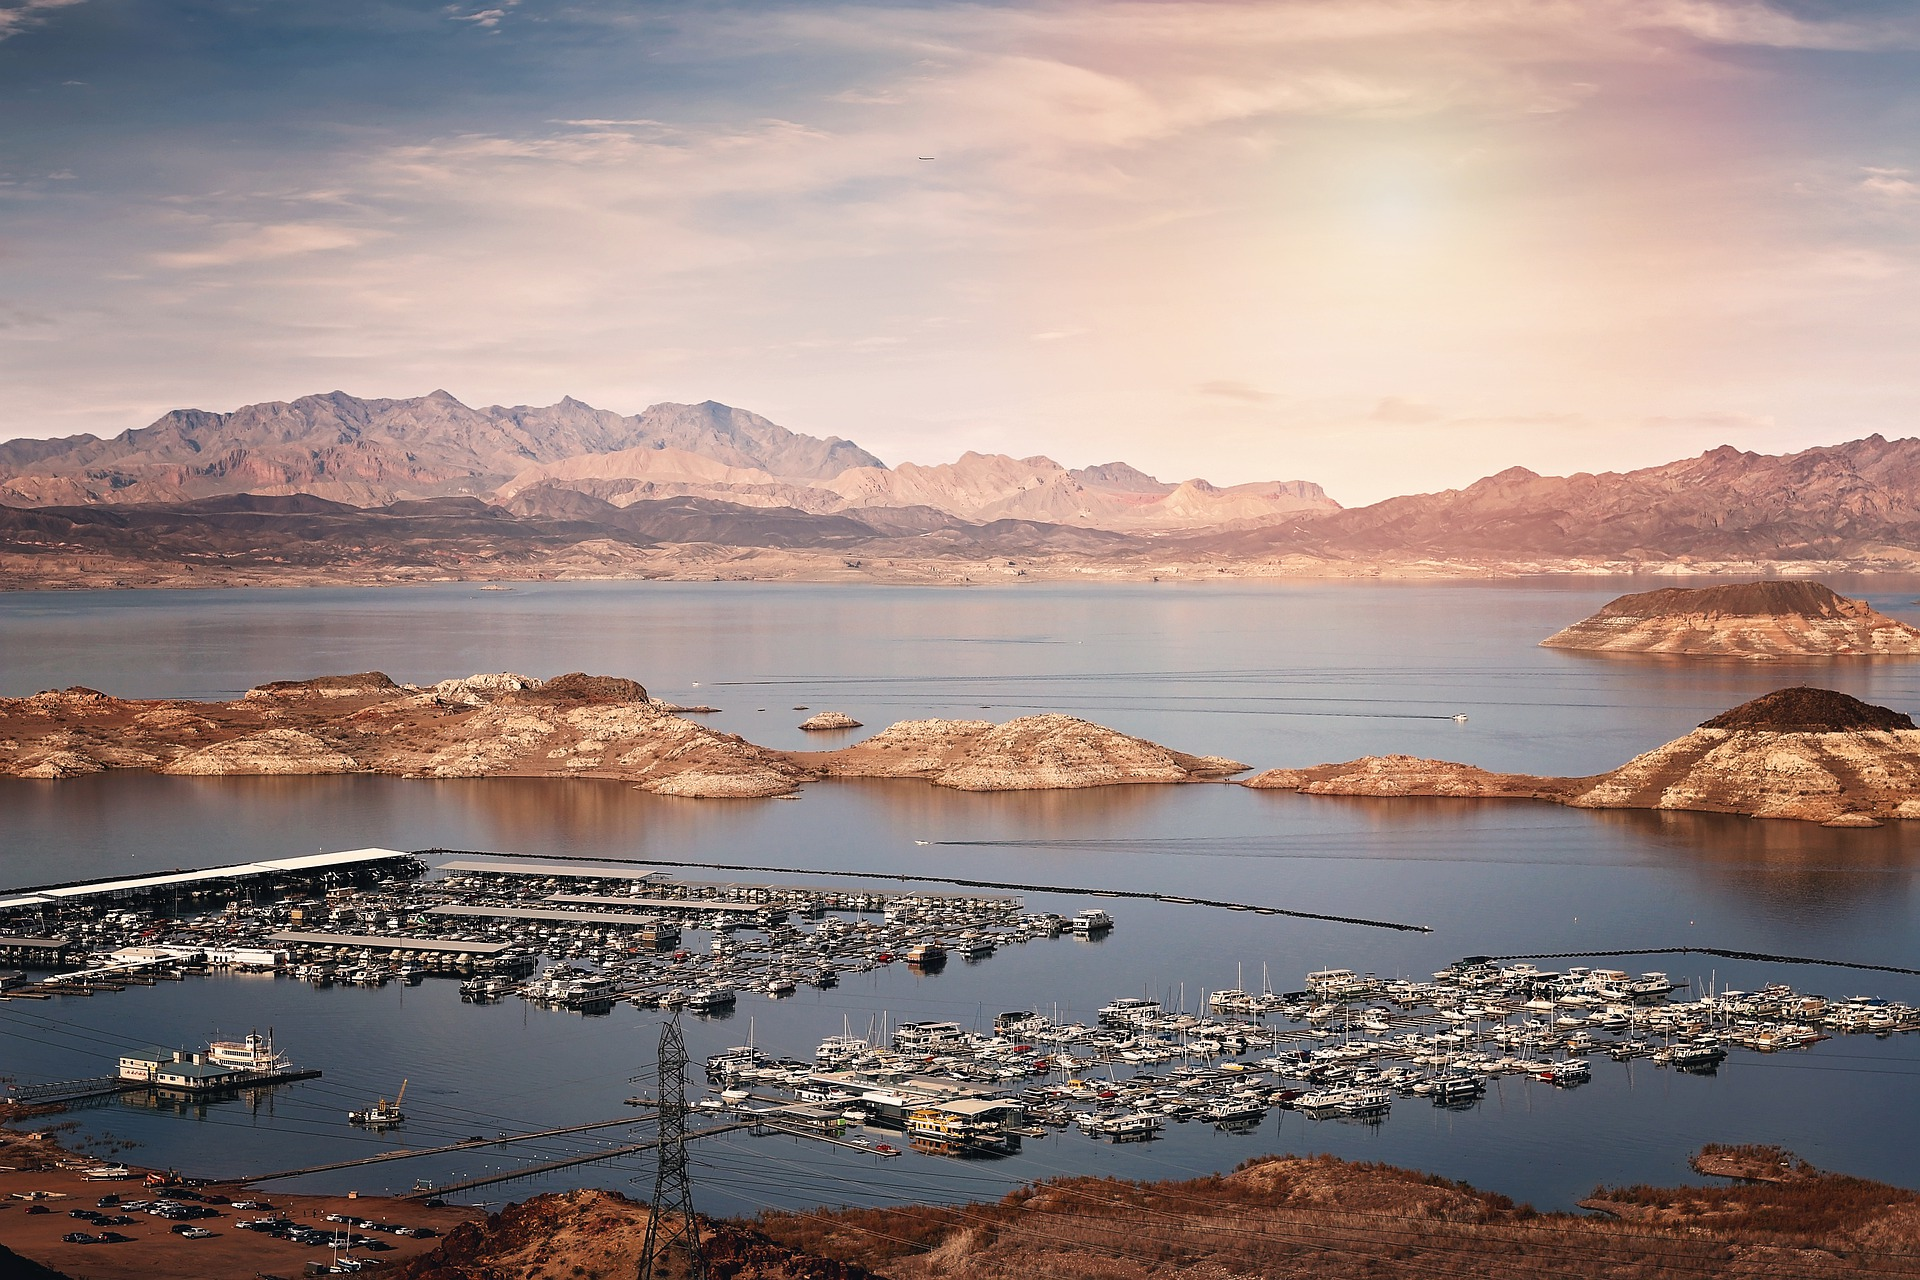 Lake Mead, Southern Nevada